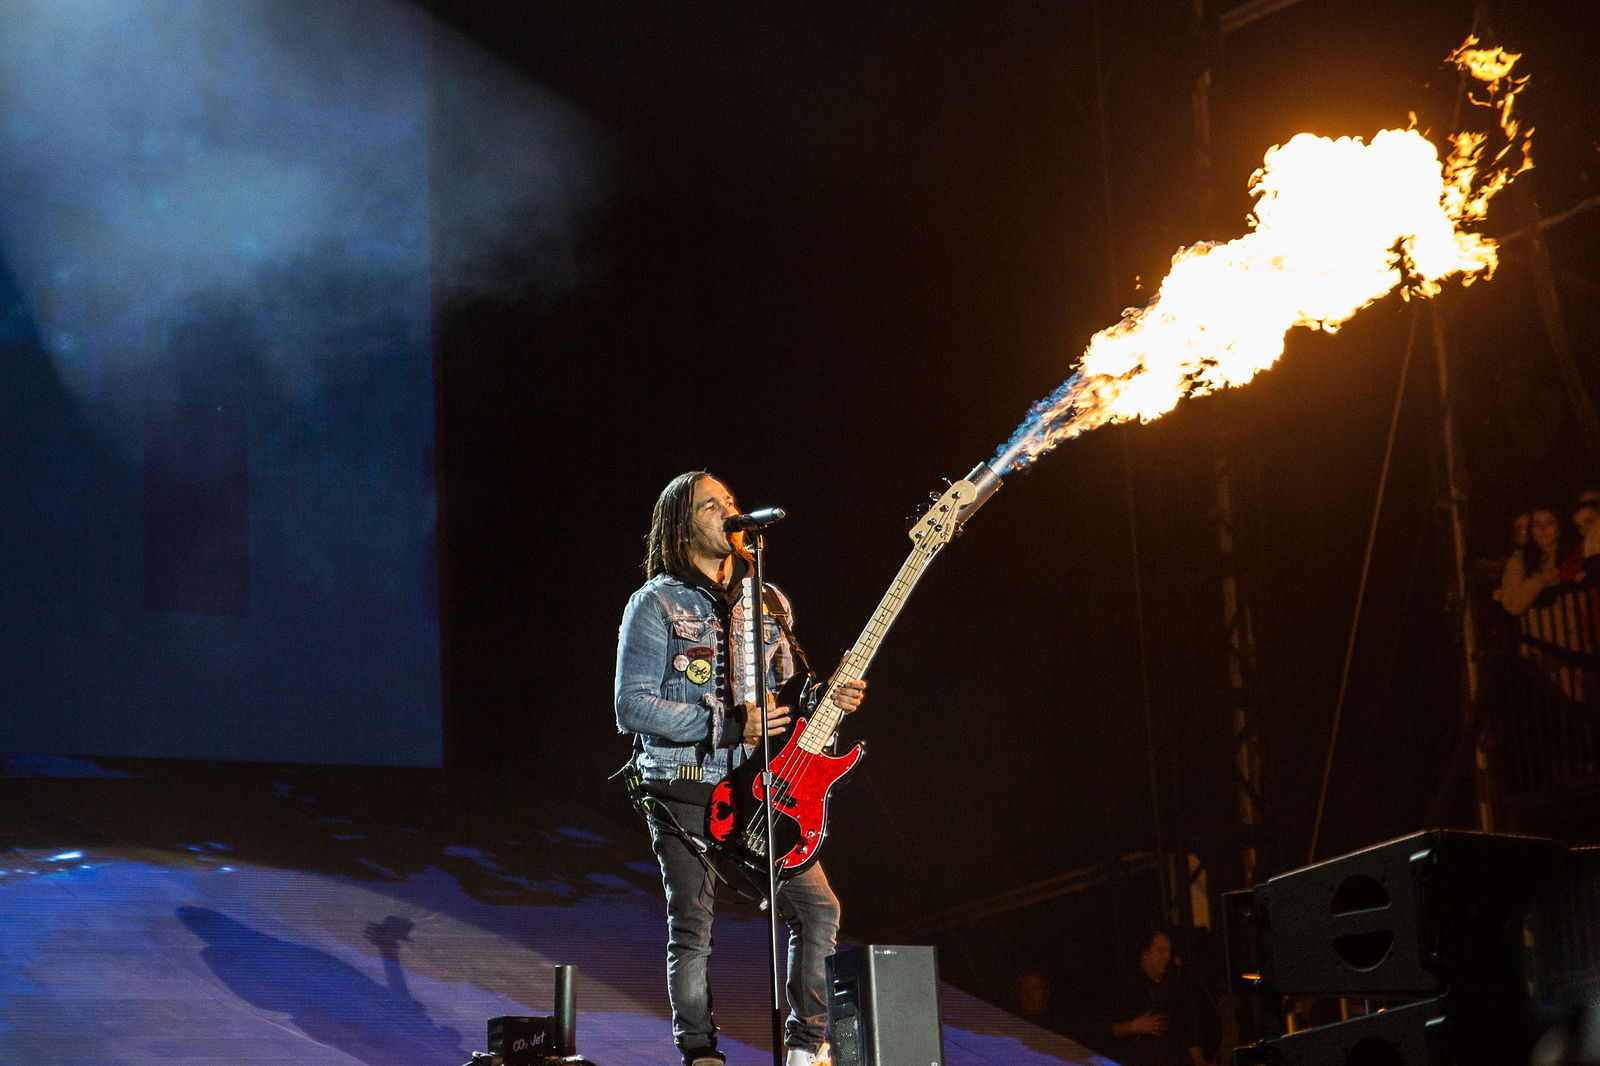 PETE WENTZ OF FALL OUT BOY PERFORMING AT LEEDS FESTIVAL 2018 - 25.08.2018  PICTURE BY: MICHELLE ROBERTS